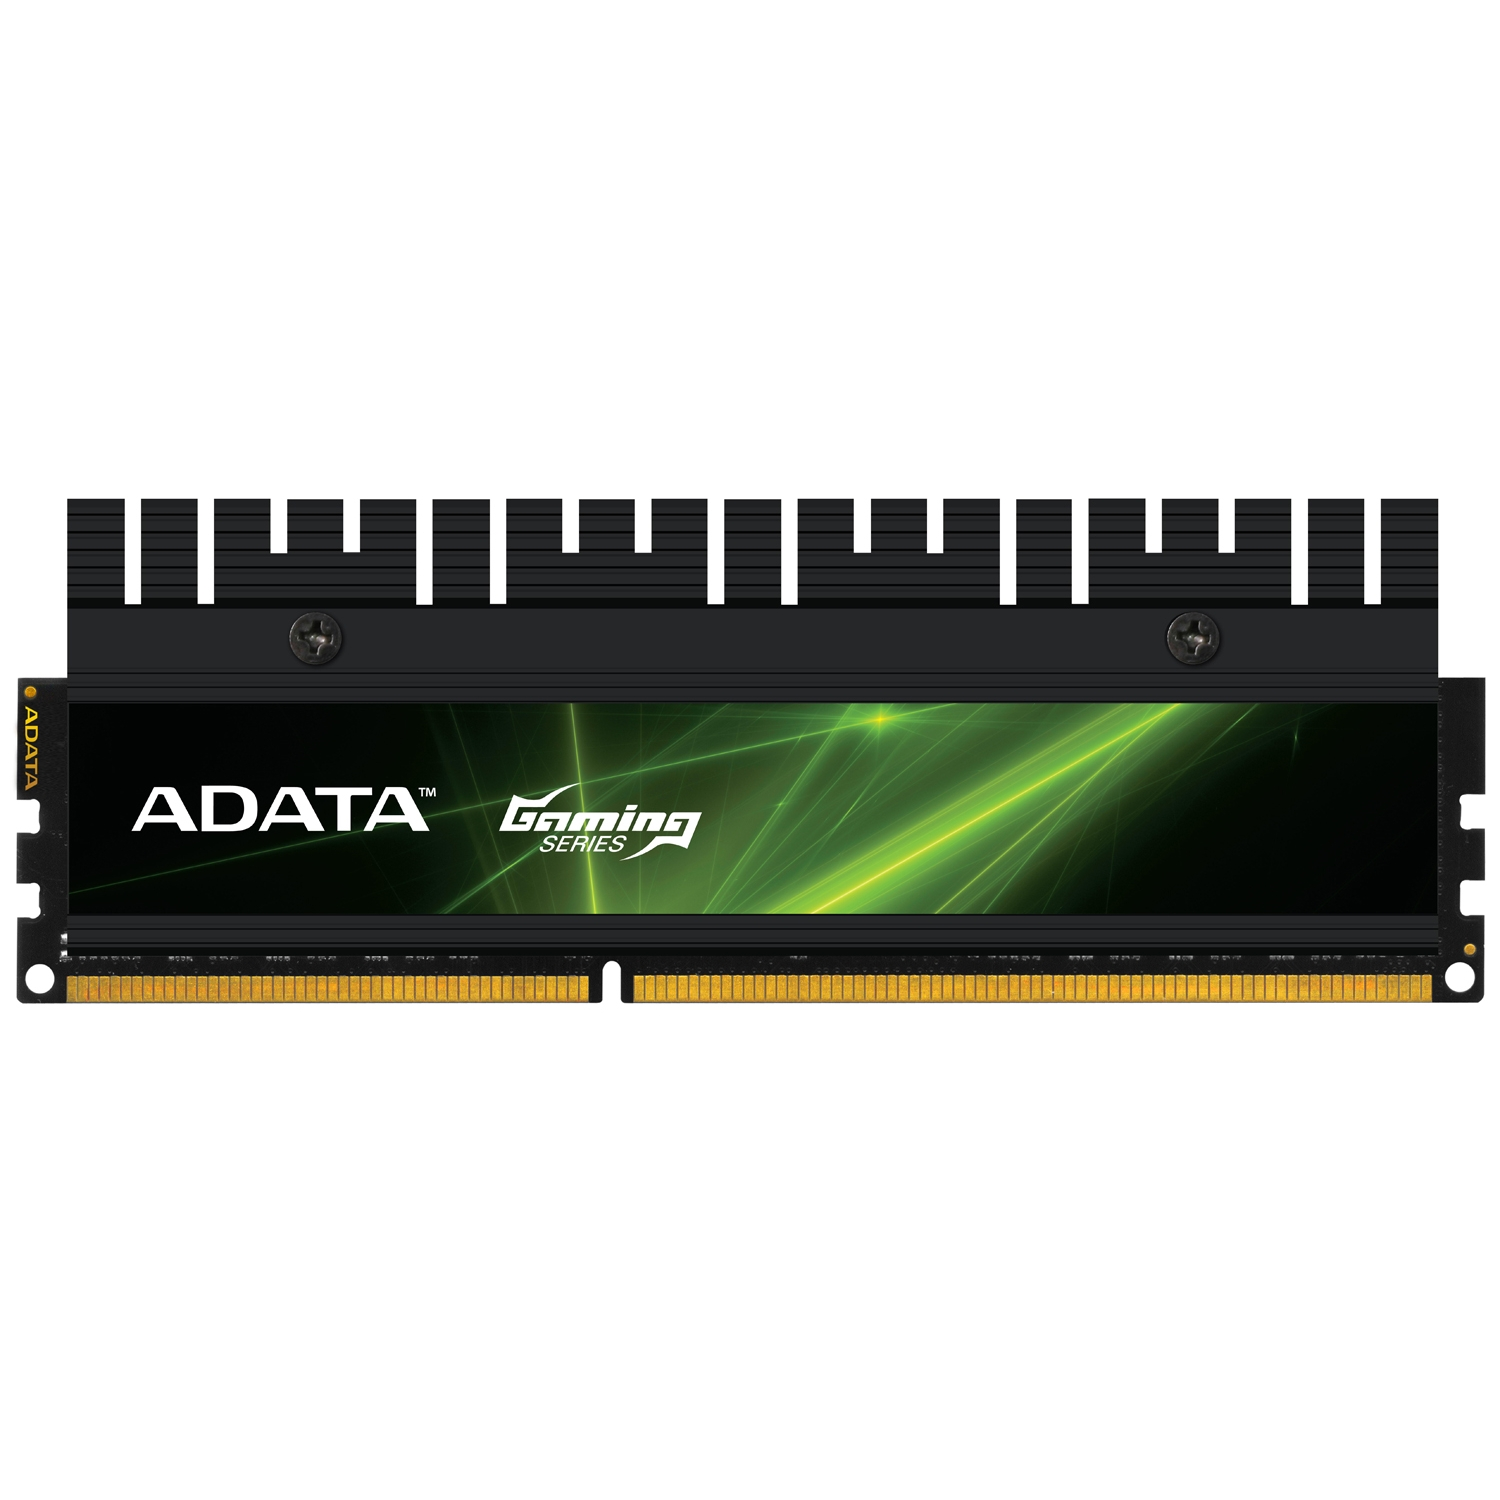 ADATA XPG Gaming DDR3 2400 Dual 8GB 02 HiRes 01